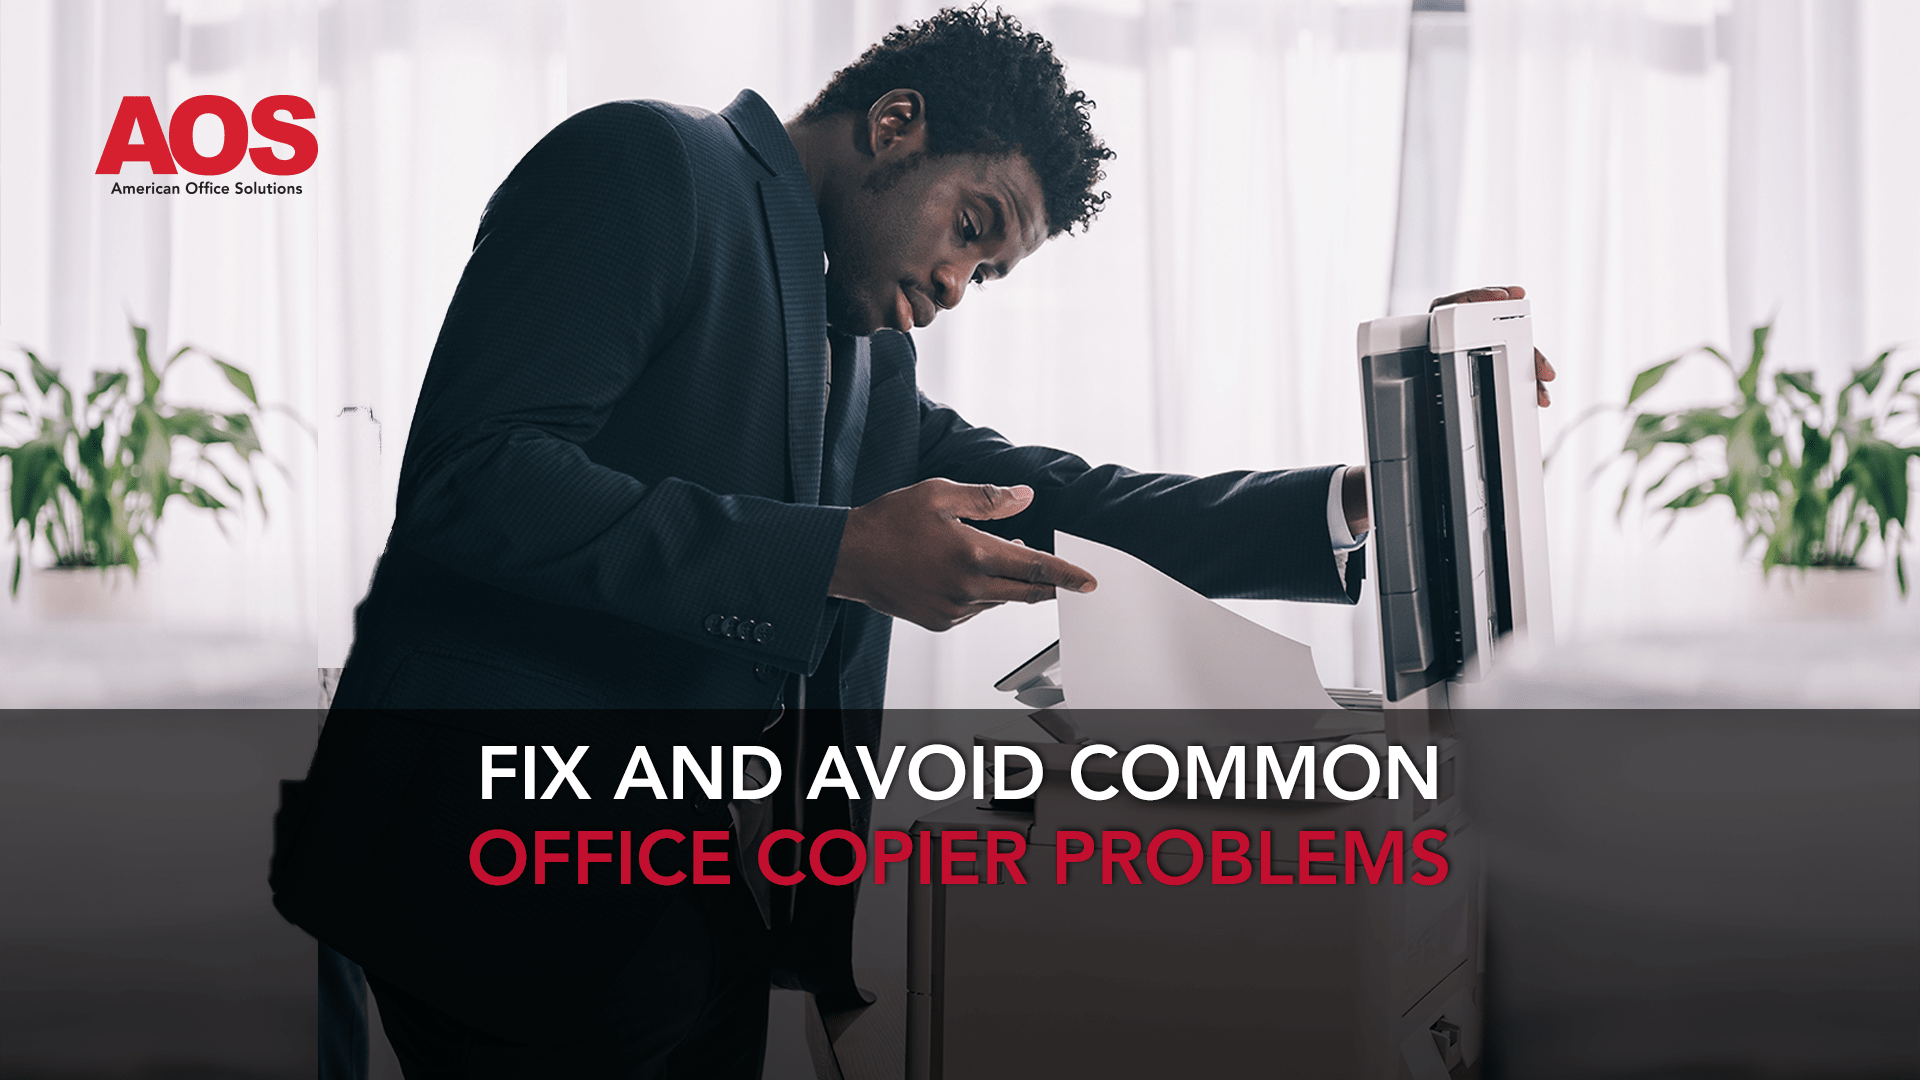 How do I Fix and Avoid Common Office Copier Problems?